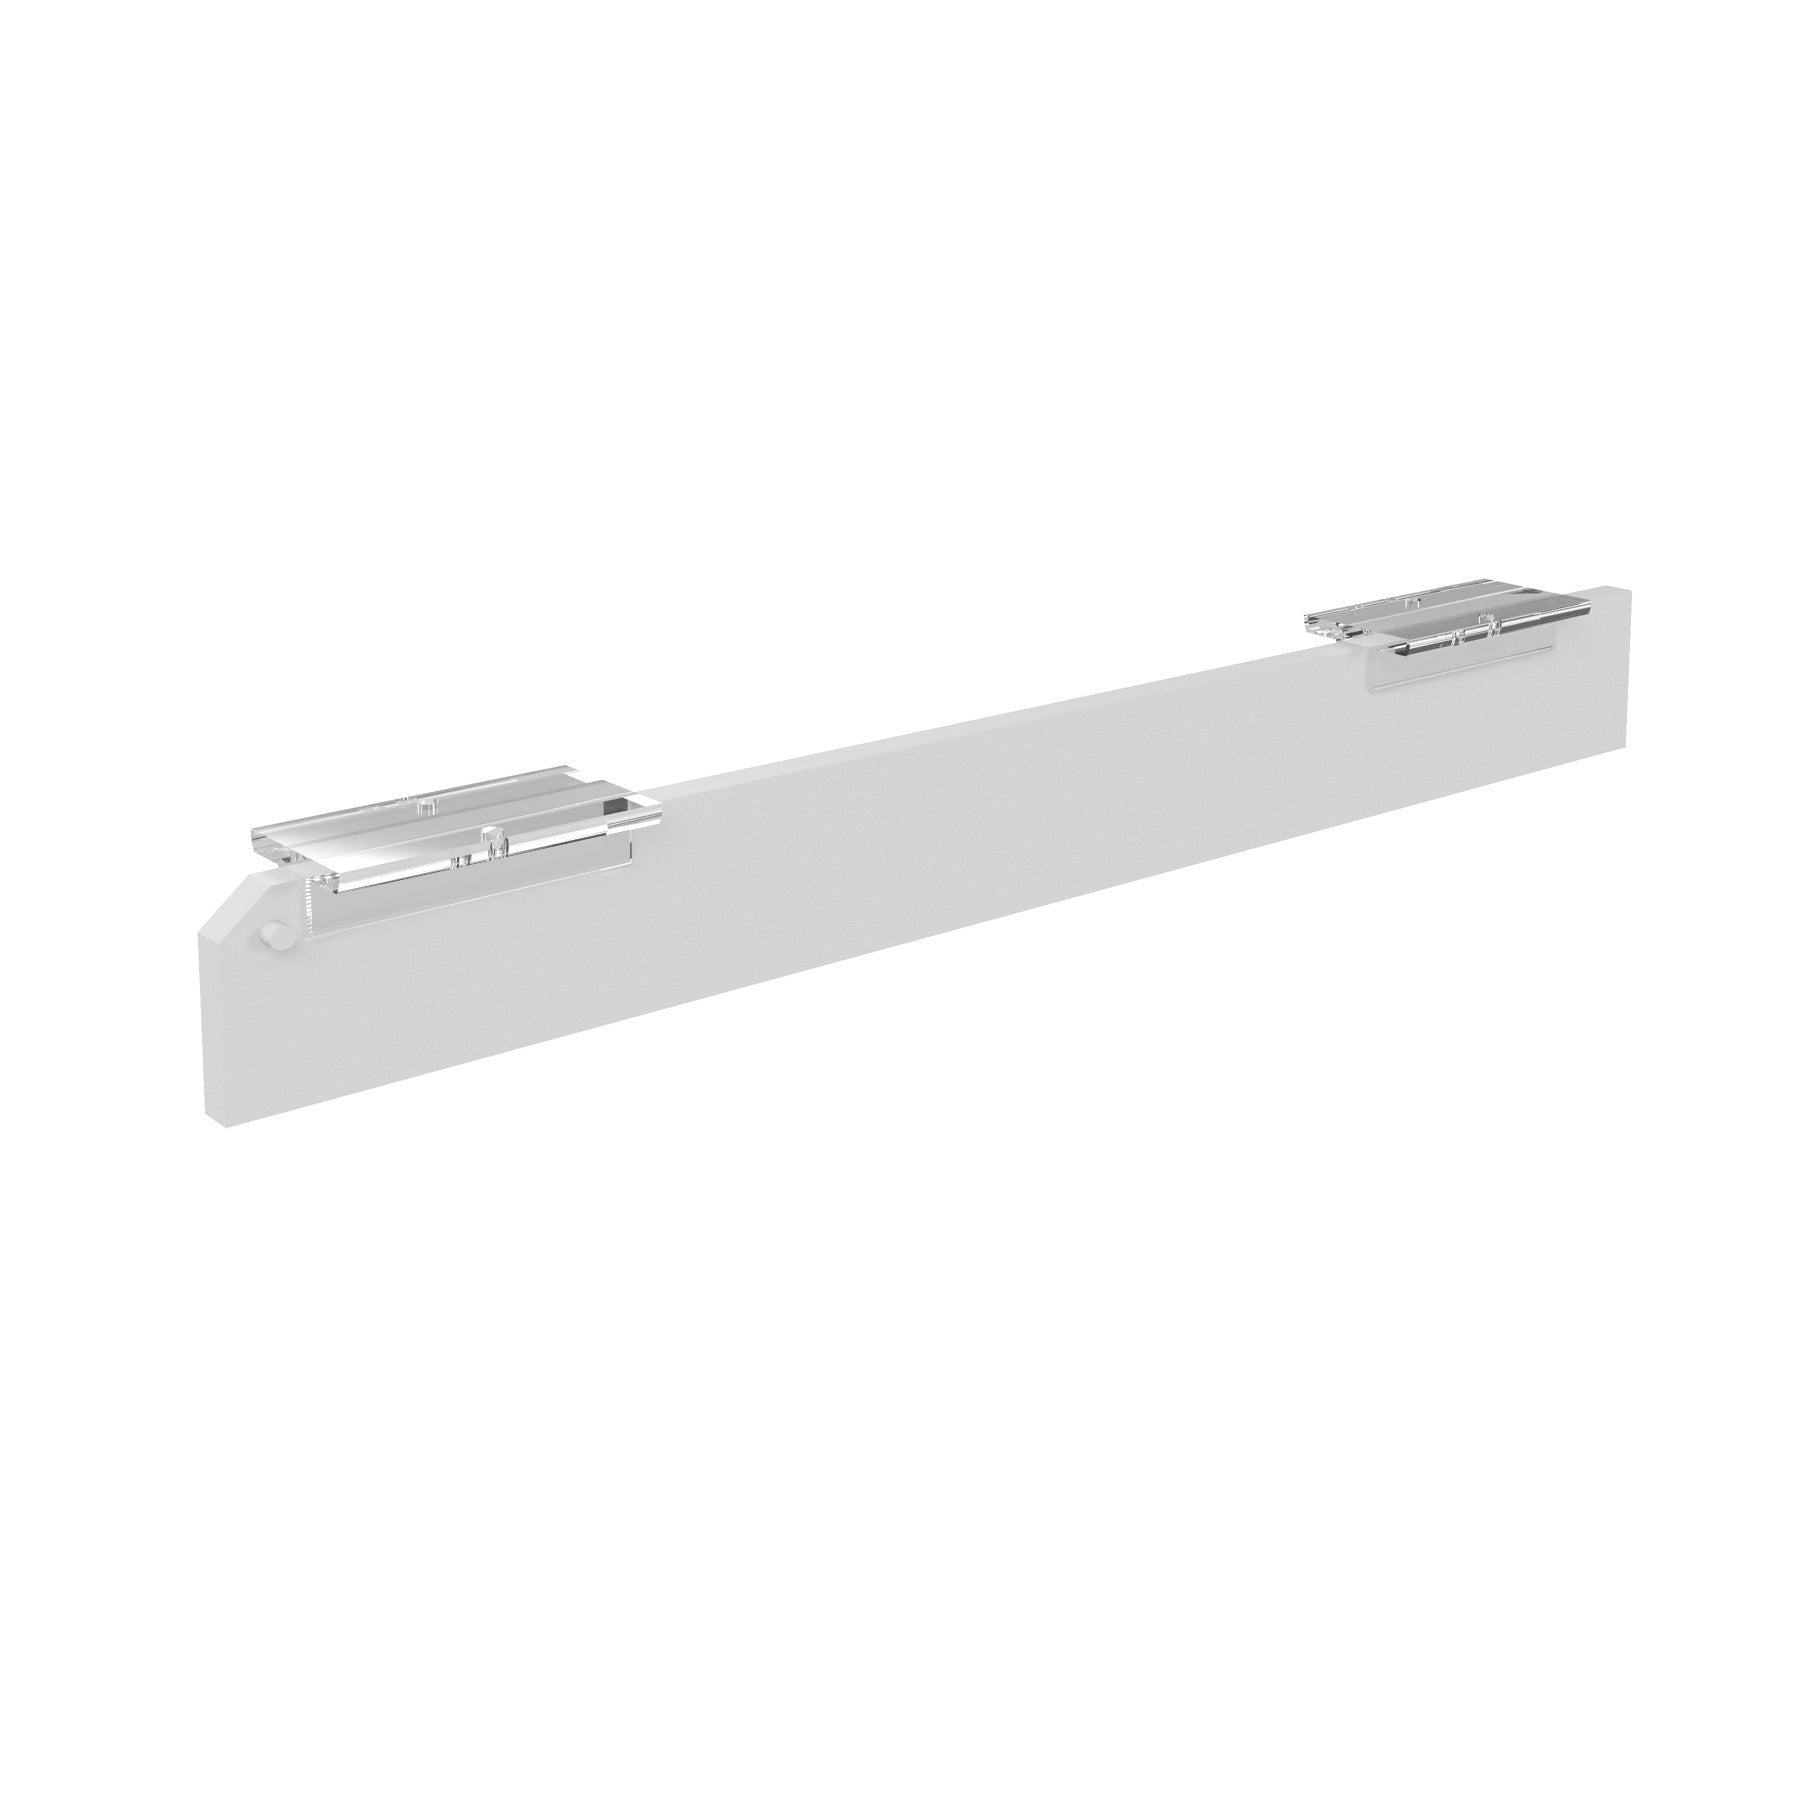 ISS Bracket / Bookend